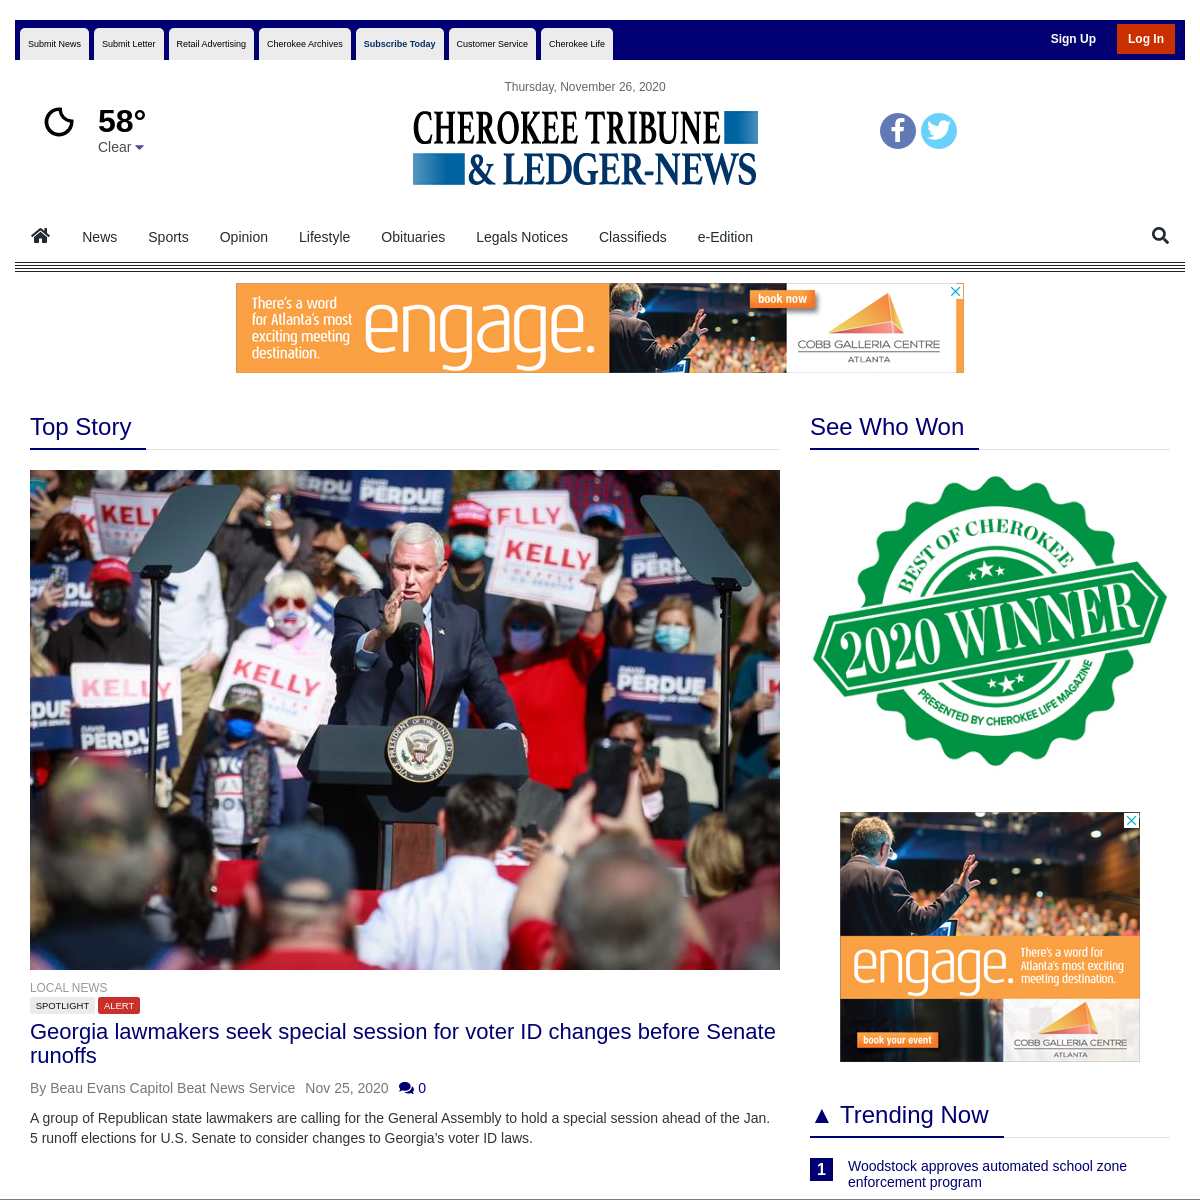 Tribune Ledger News - Powered by the Cherokee Tribune and Ledger